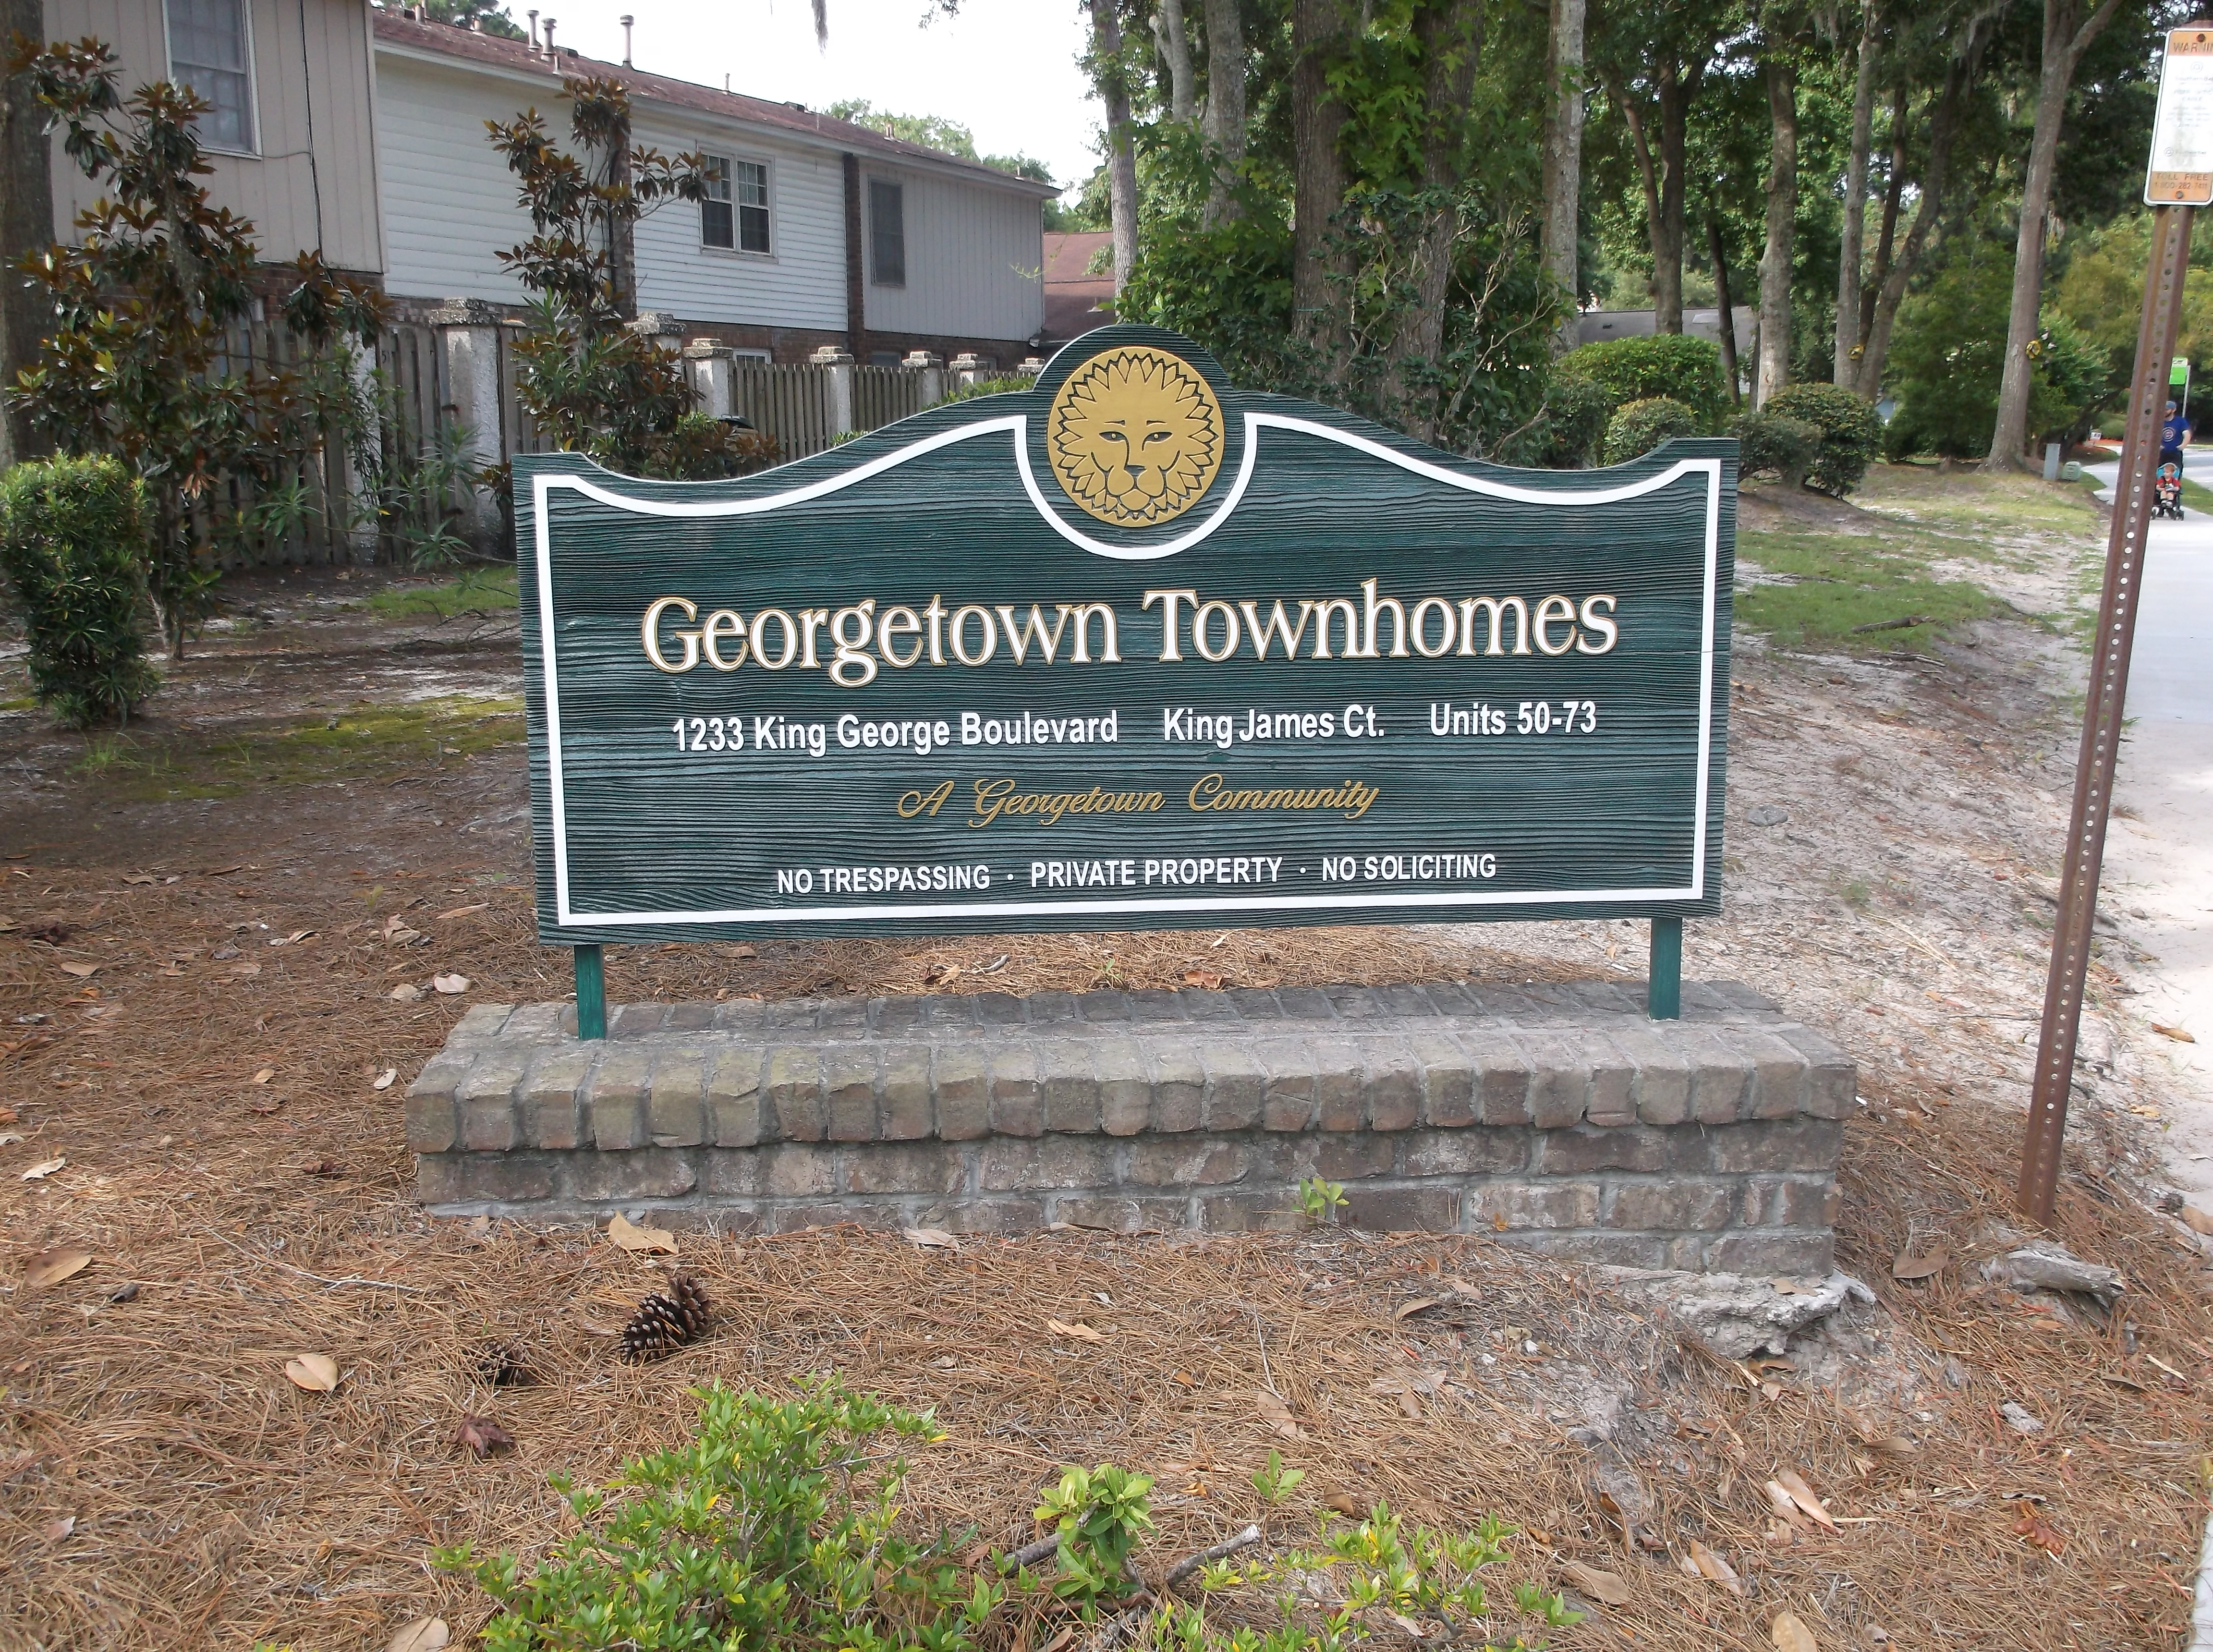 georgetowntownhomes